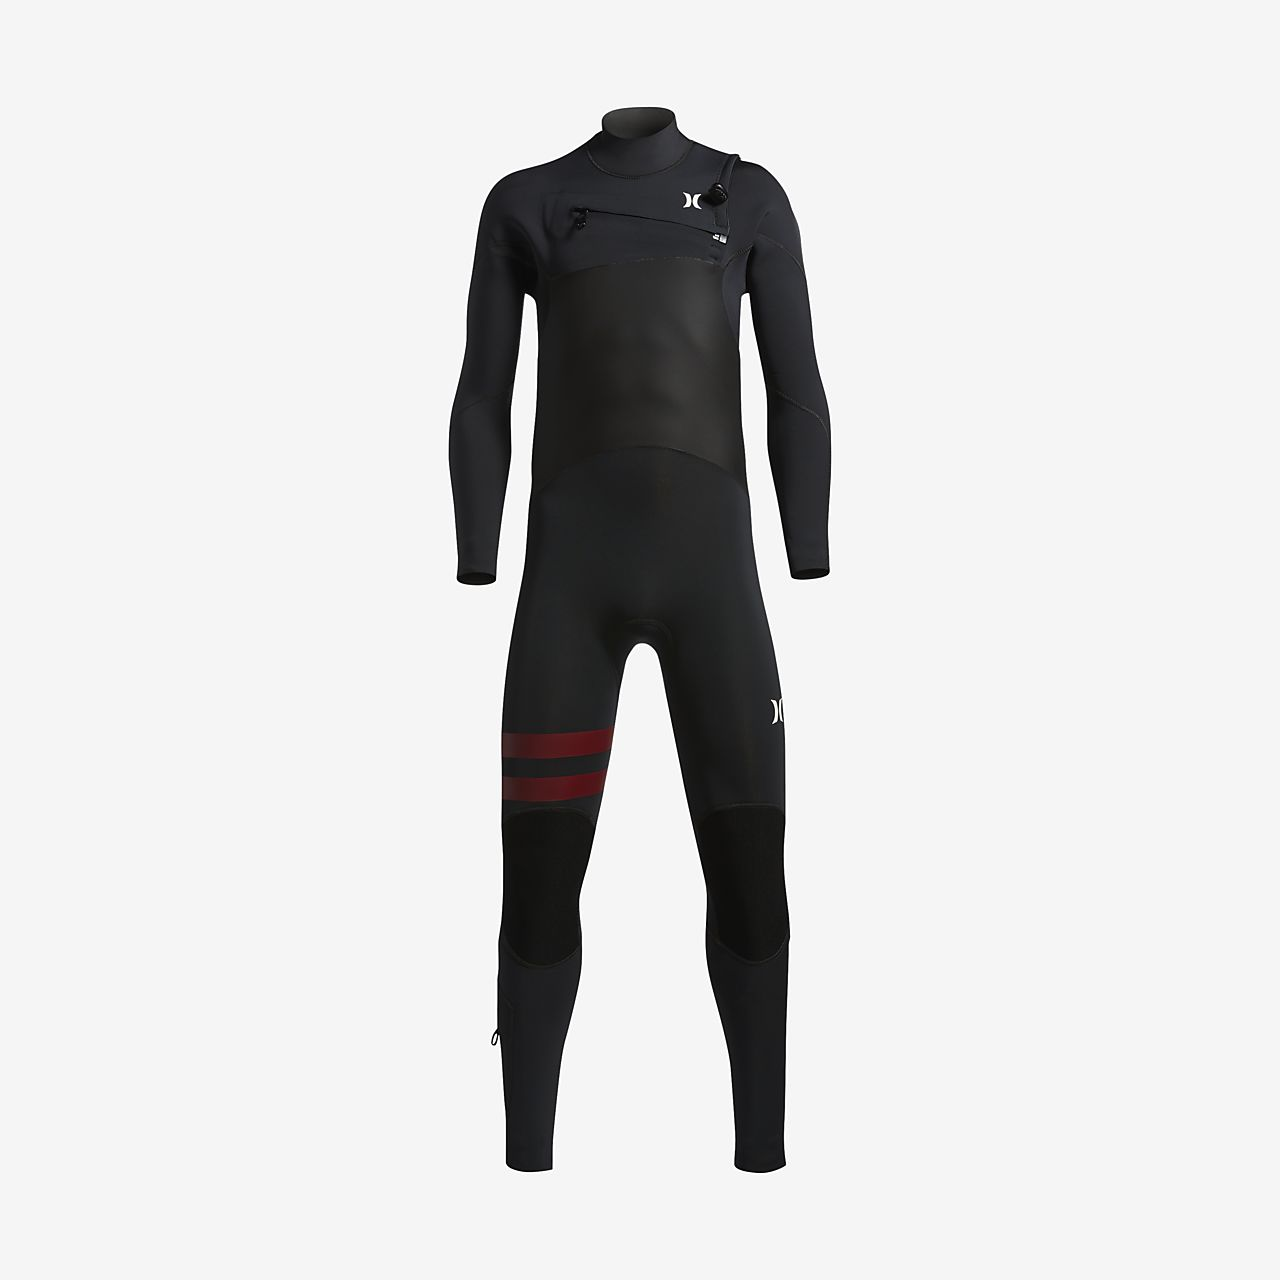 Hurley Advantage Plus 3 / 2 mm Fullsuit våtdrakt for store barn (gutt)